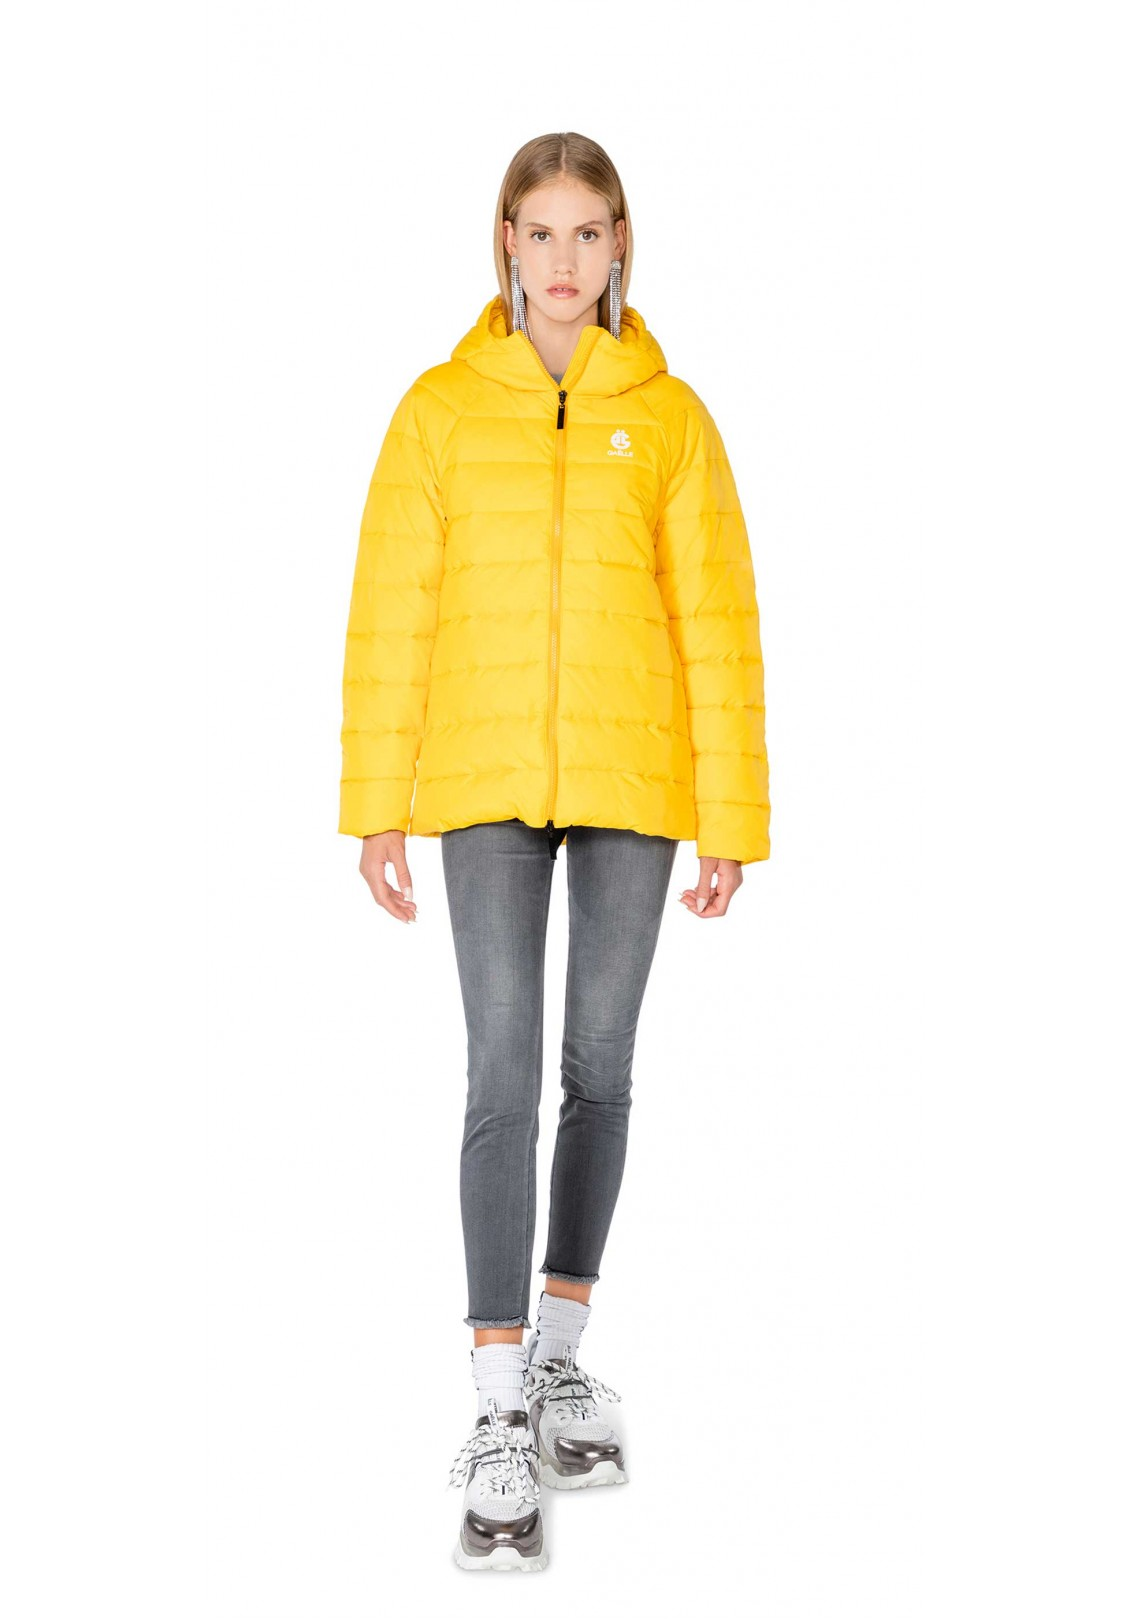 DOWN JACKET - GBD7210 - GAELLE PARIS